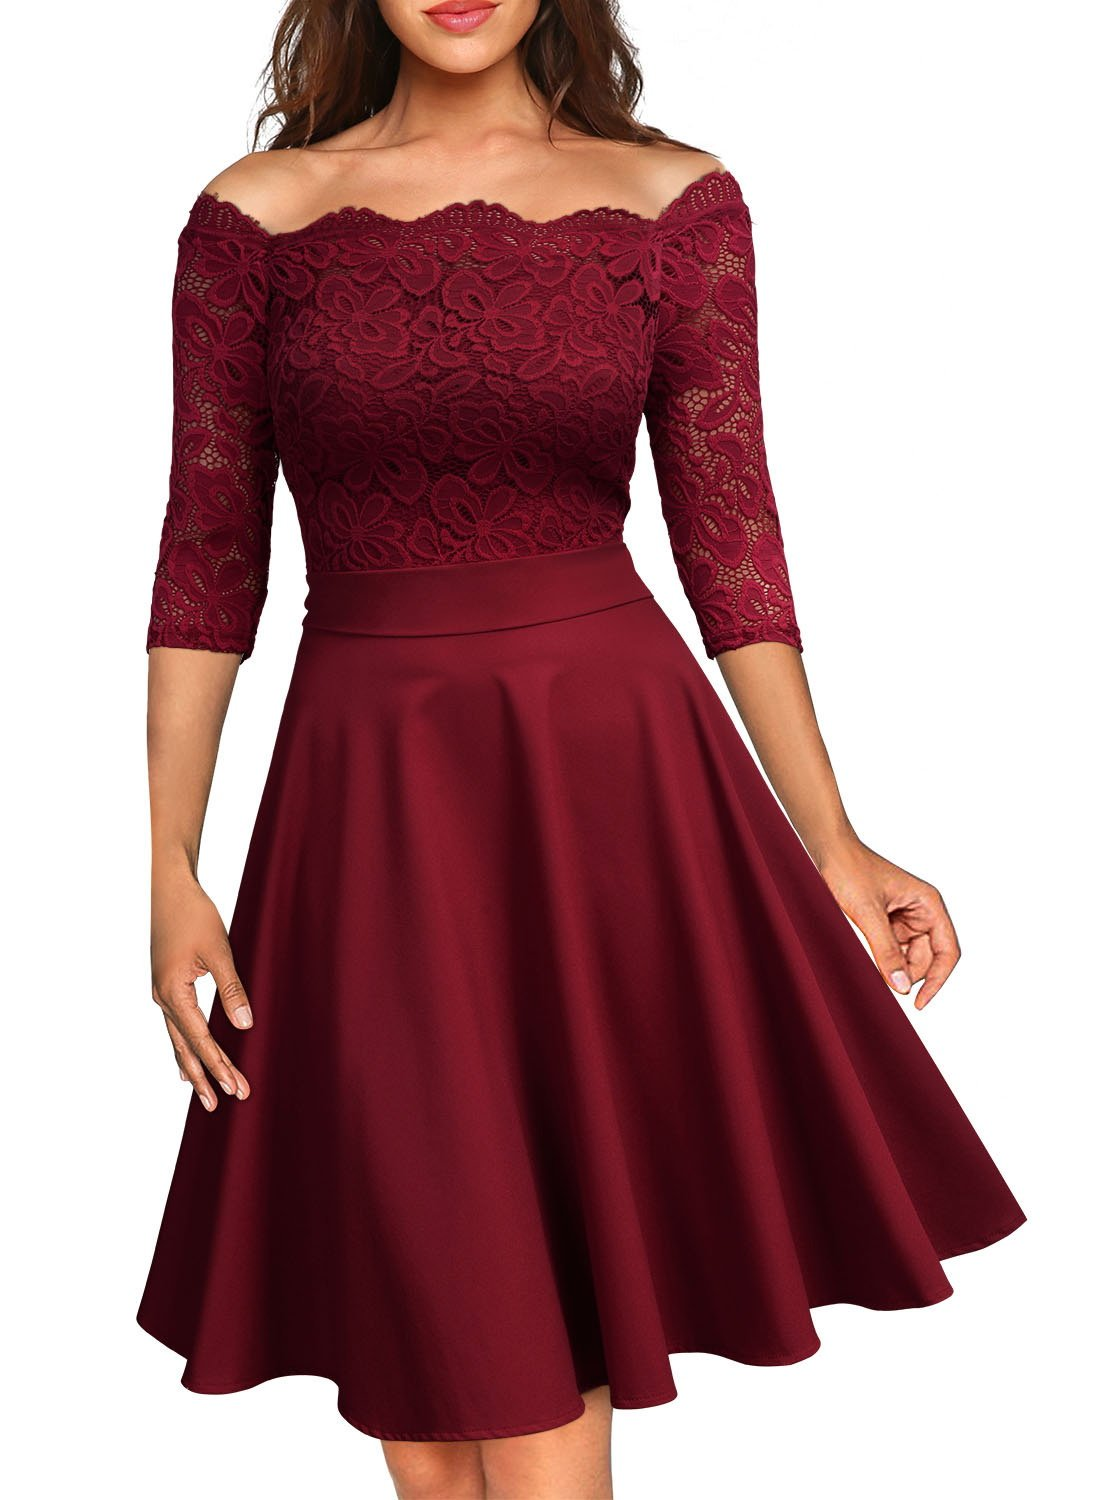 MissMay Women's Vintage Floral Lace Half Sleeve Boat Neck Cocktail Formal Swing Dress (X-Large, D-Wine Red)